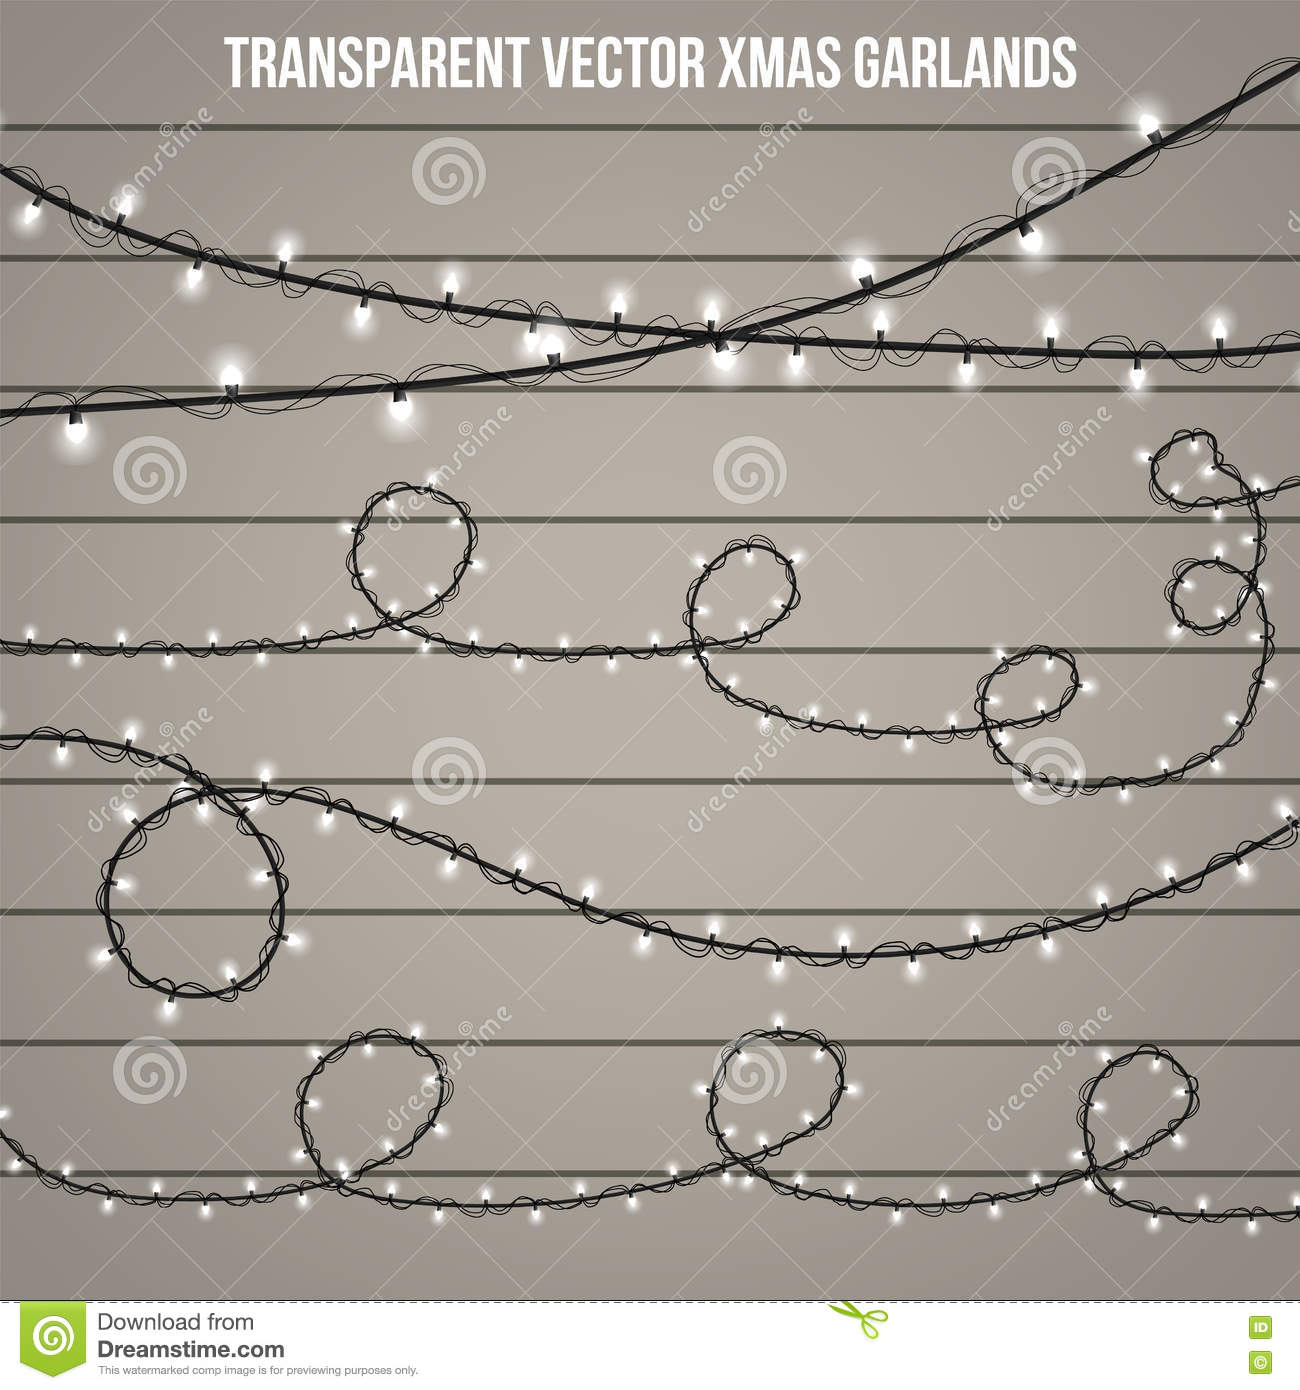 Christmas Chain Clipart.Abstract Creative Christmas Garland Light Isolated On